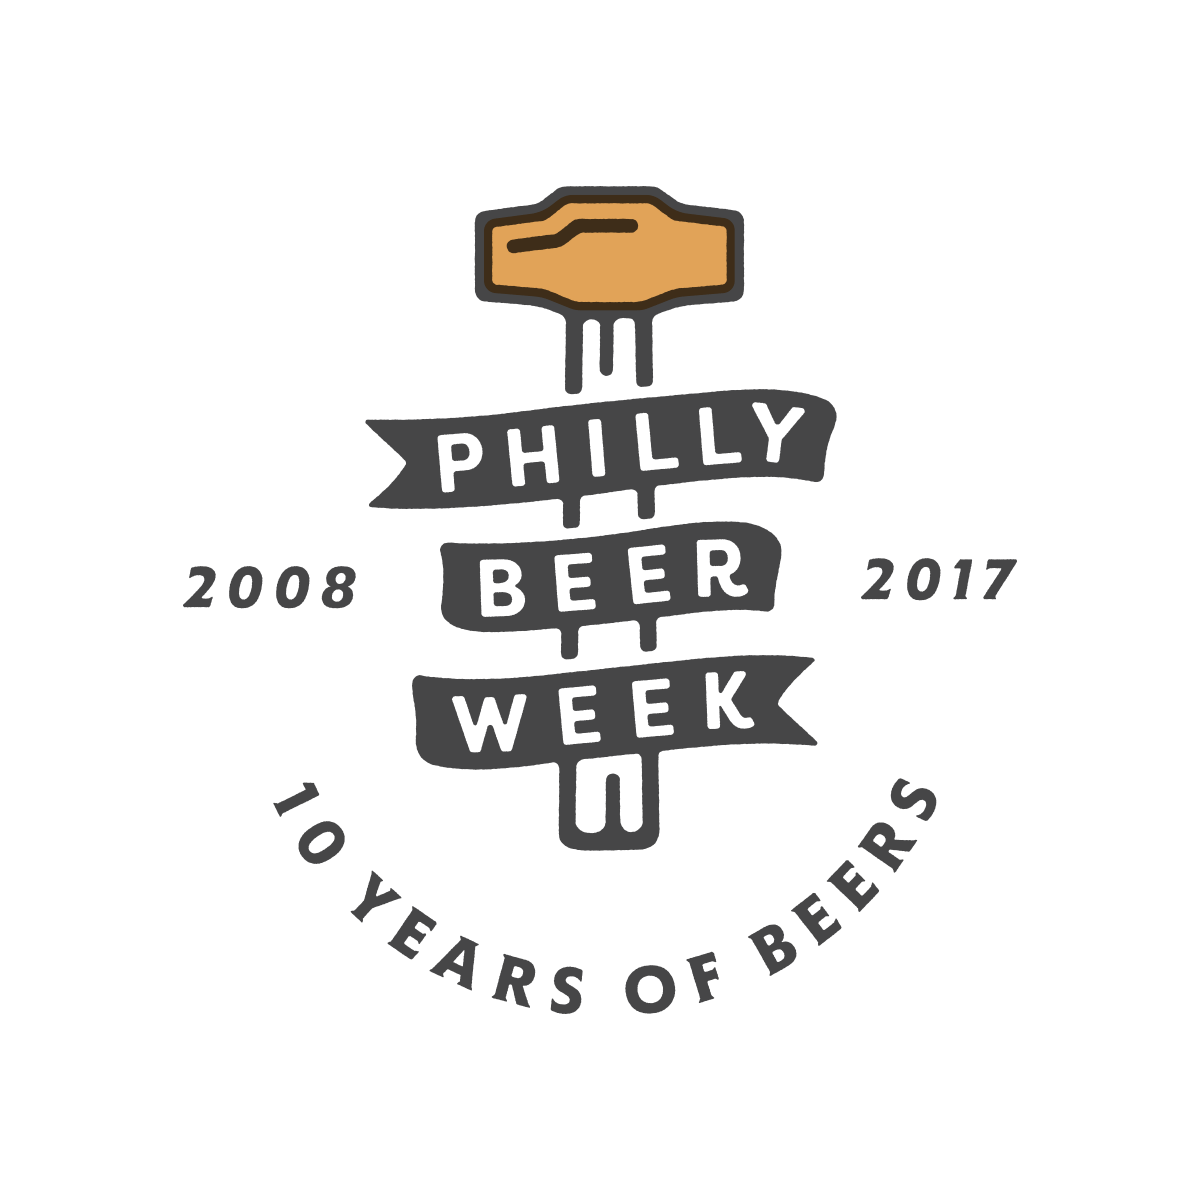 Logo for Philly Beer Week's ten year anniversary